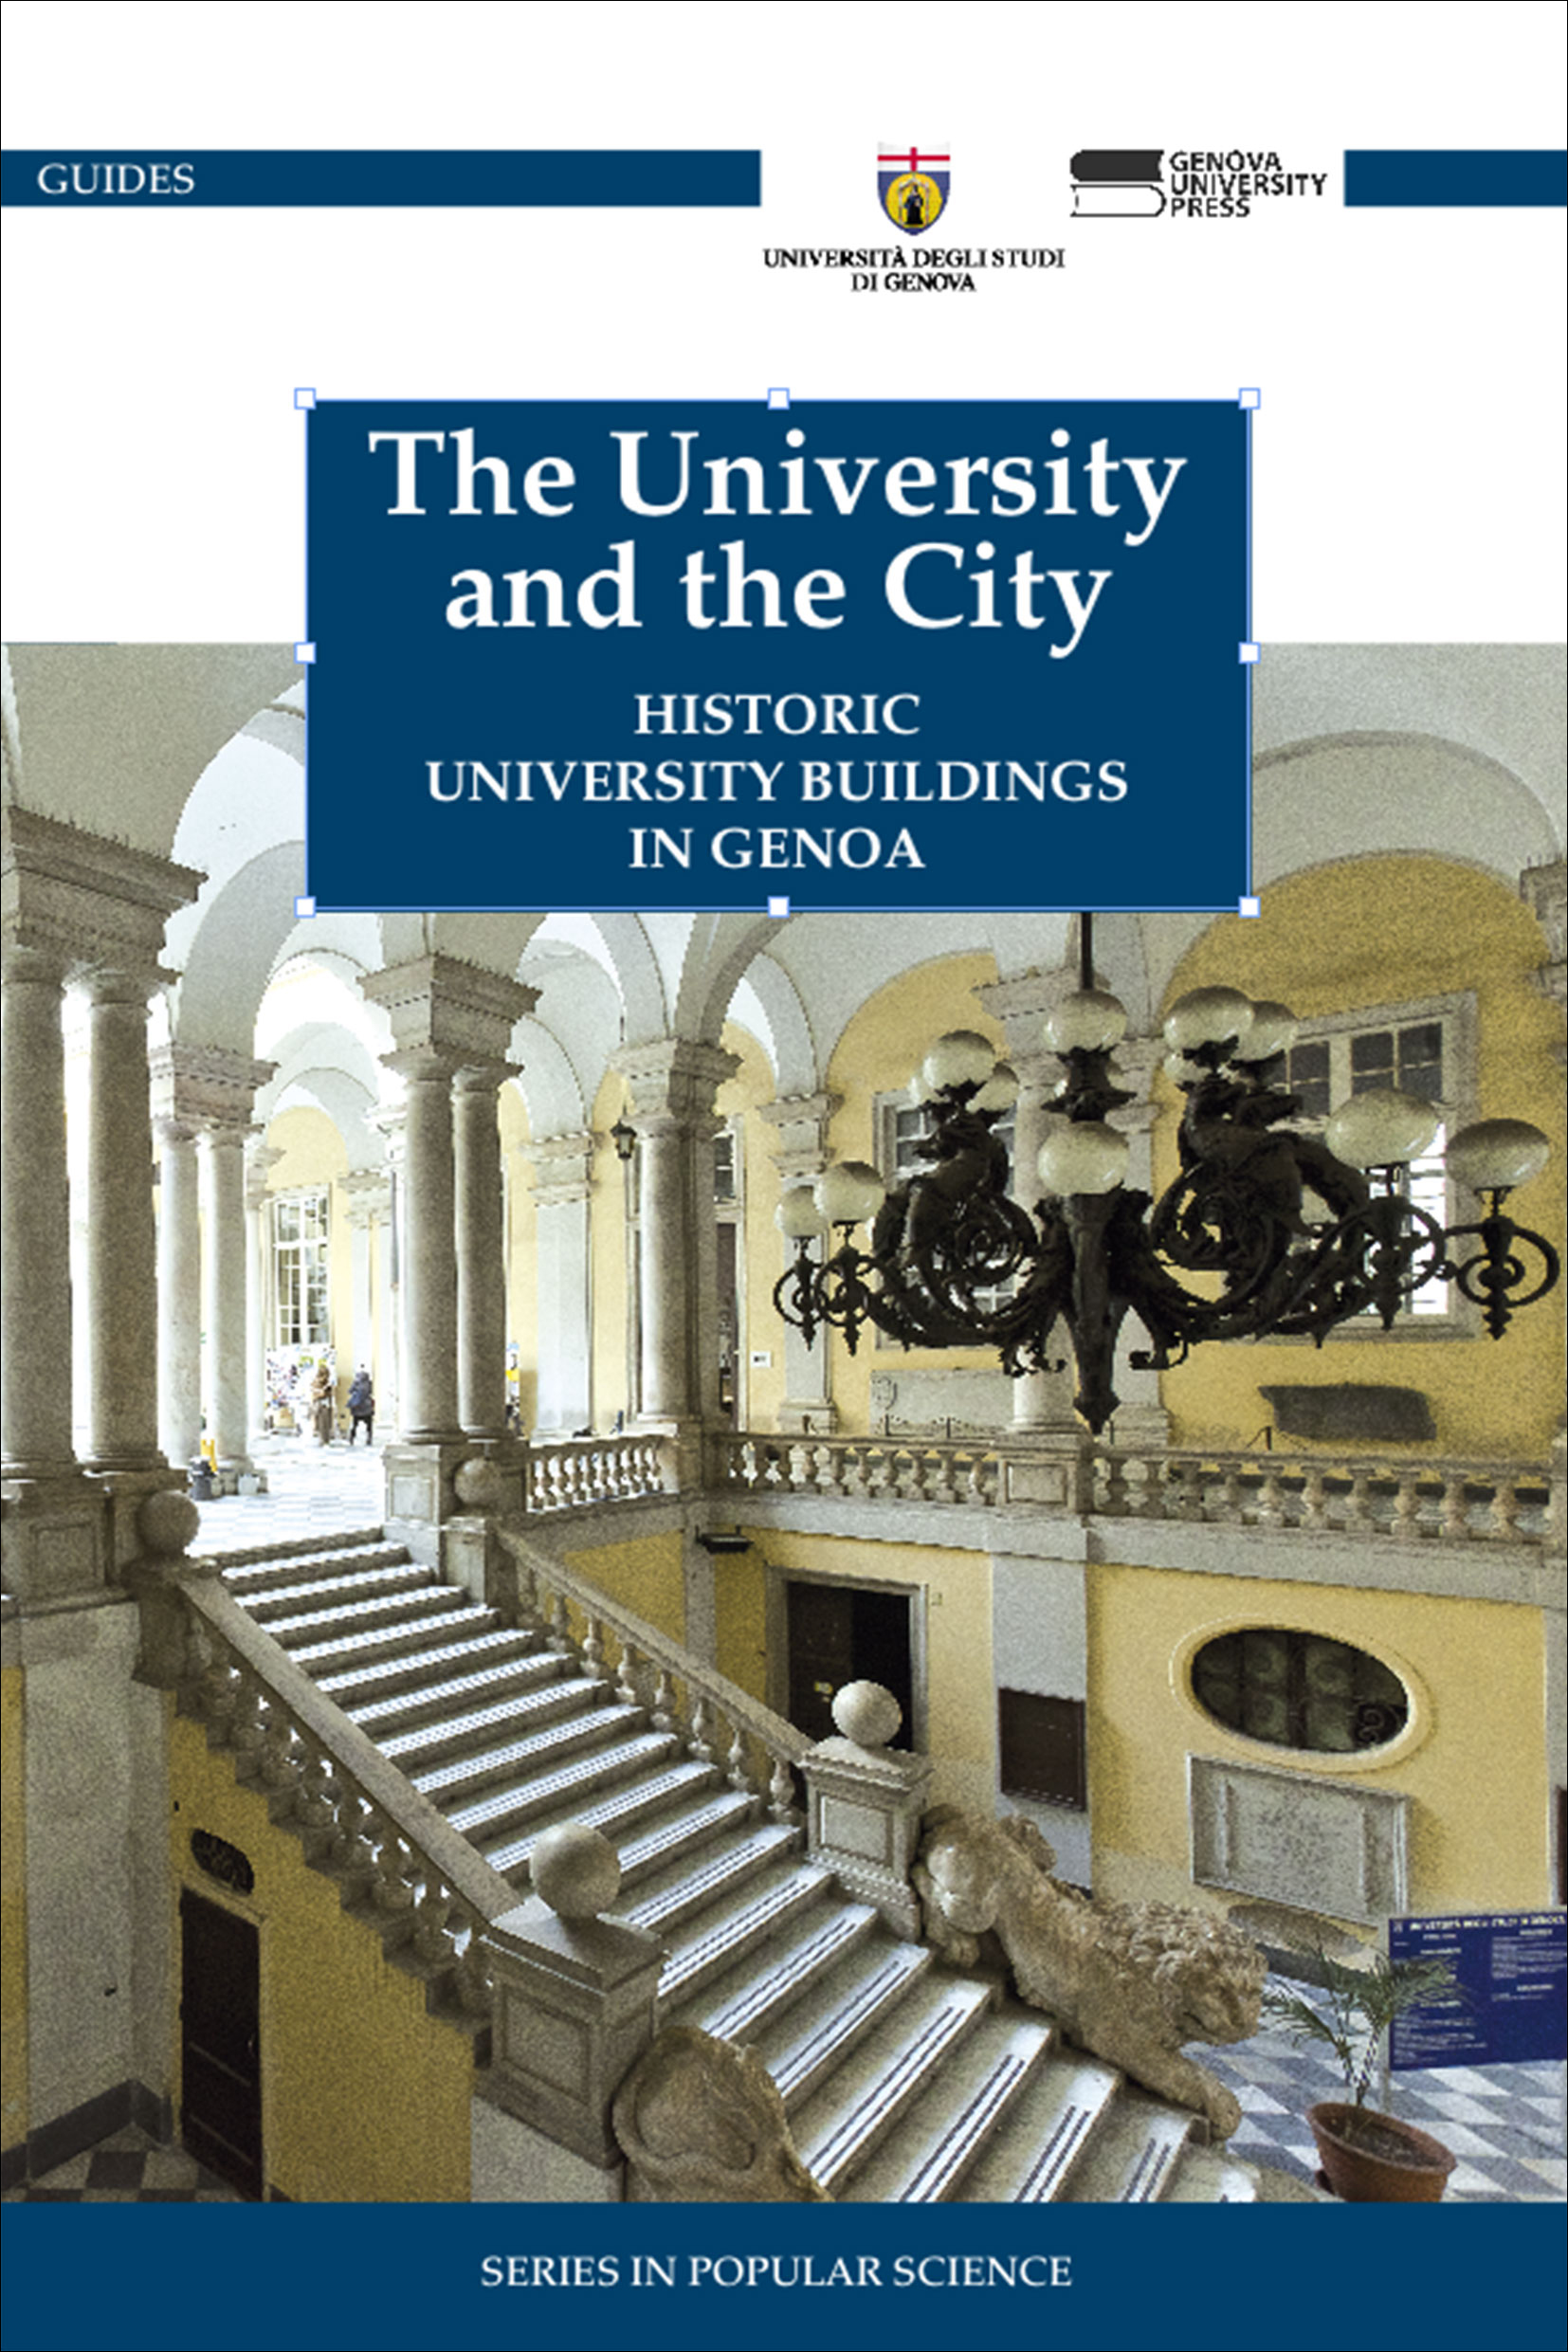 The University and the City